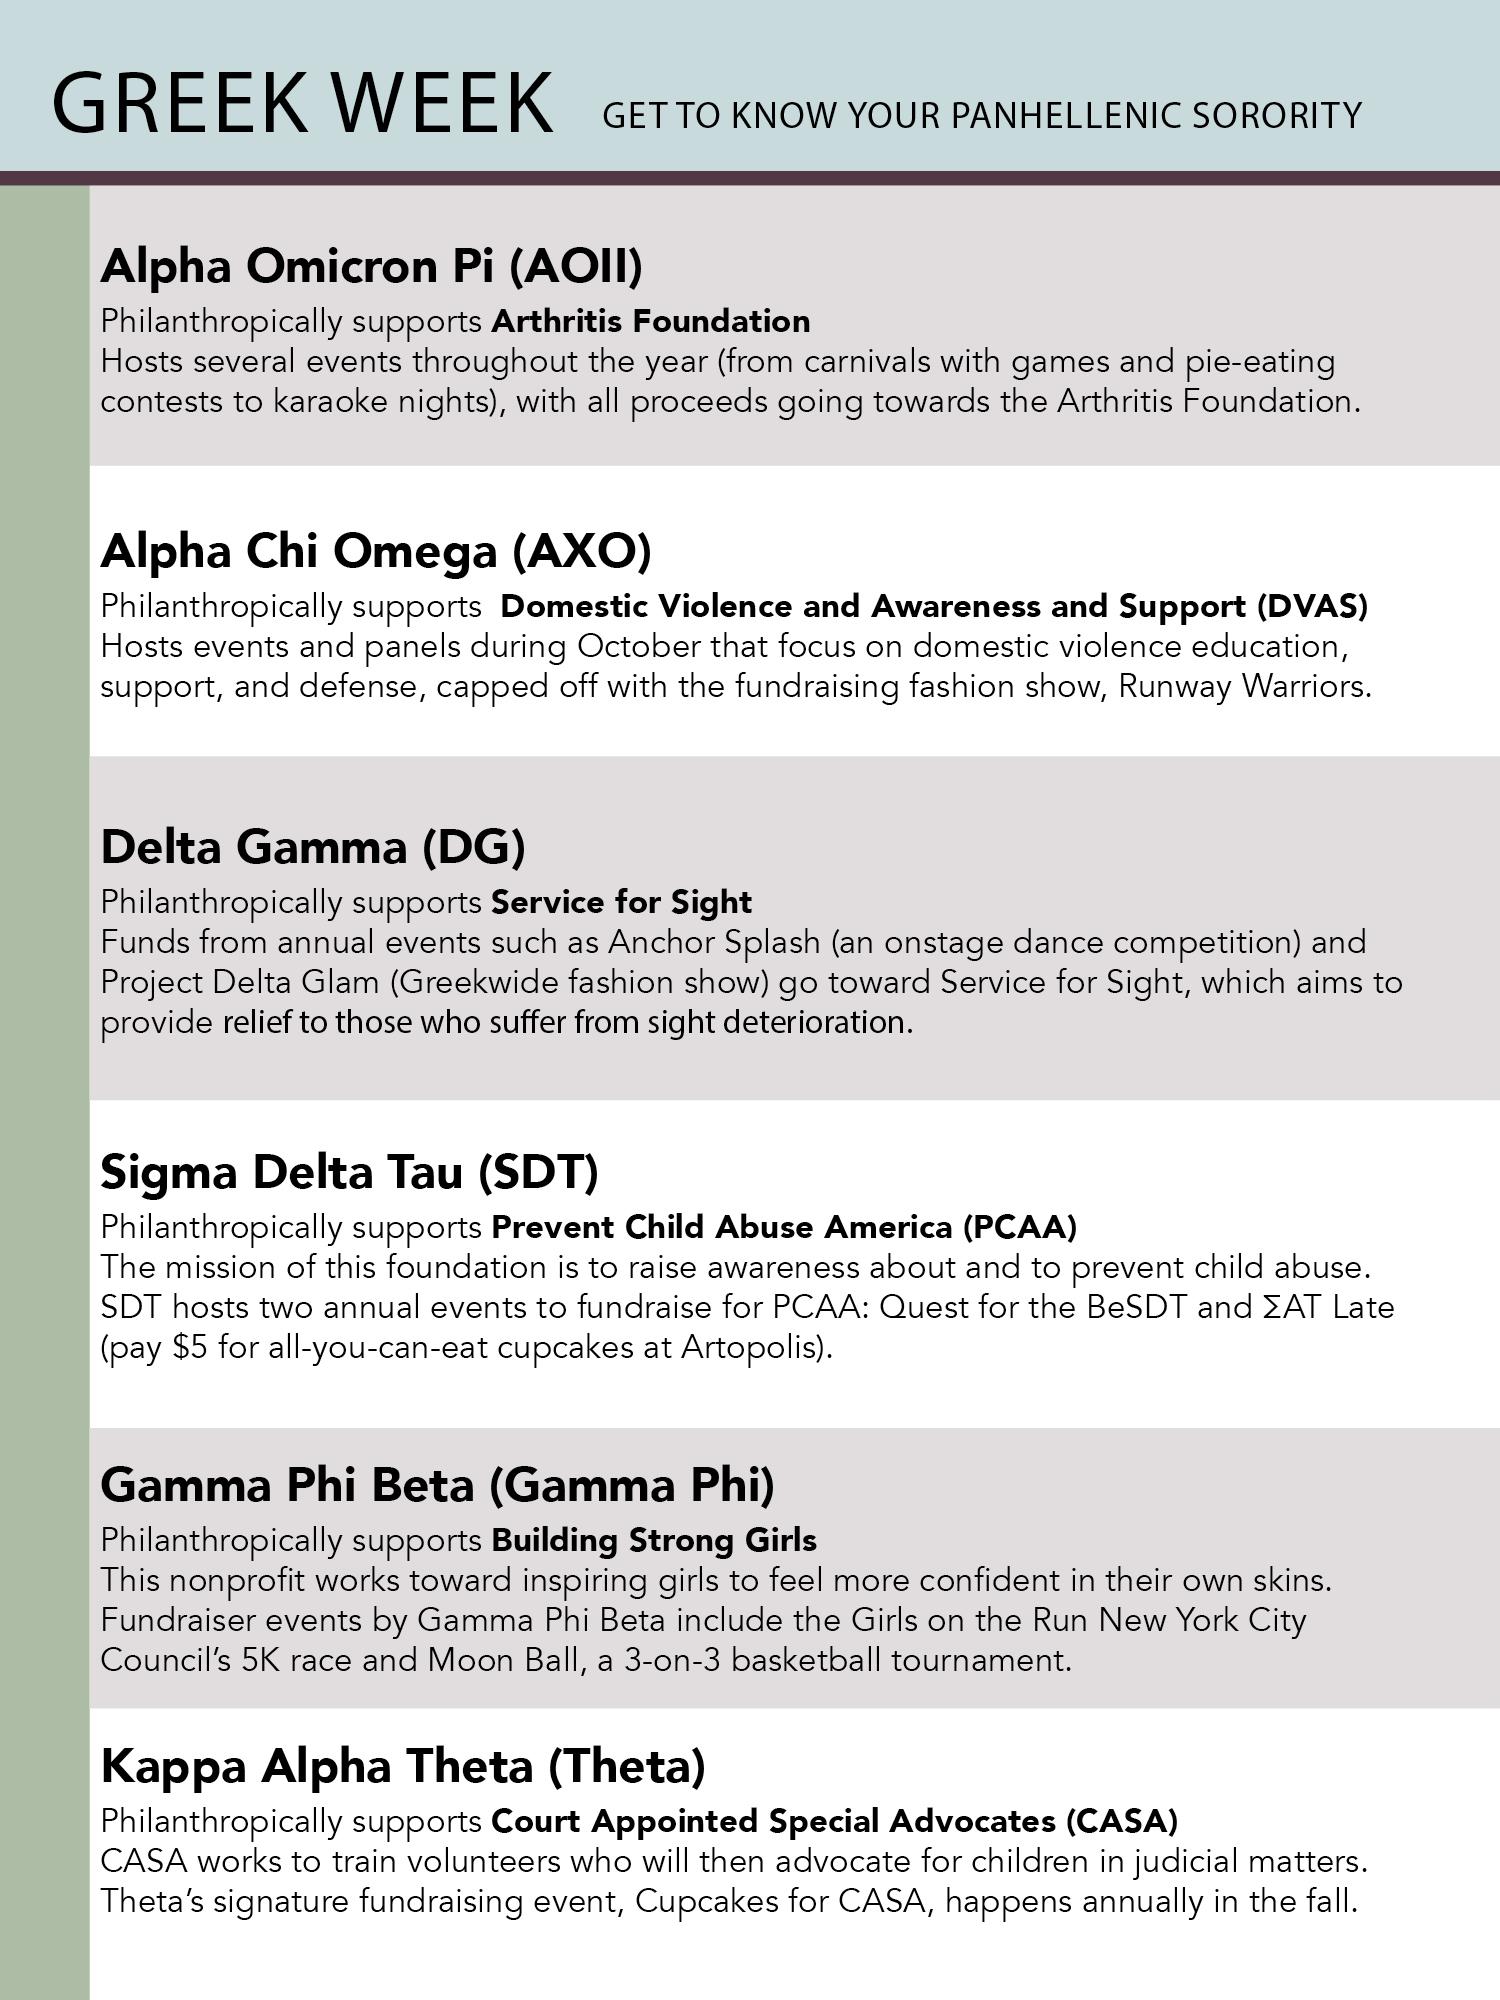 going greek 2018: dates and details for sorority recruitment week